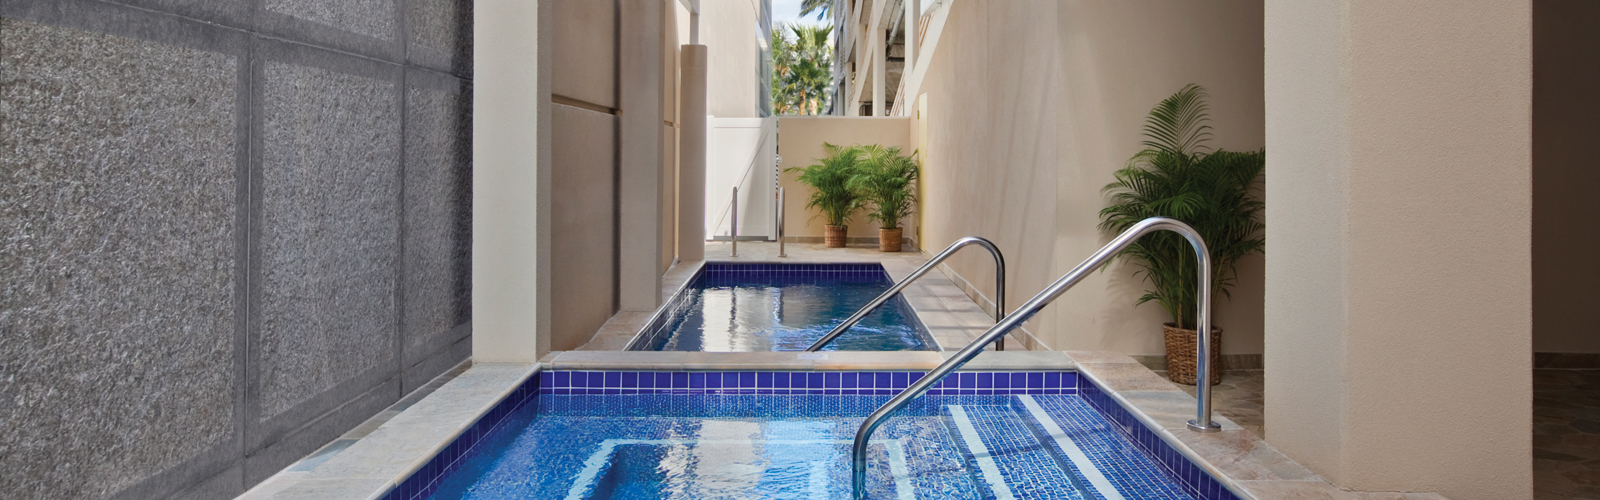 Pool at Ohana Waikiki Malia by Outrigger